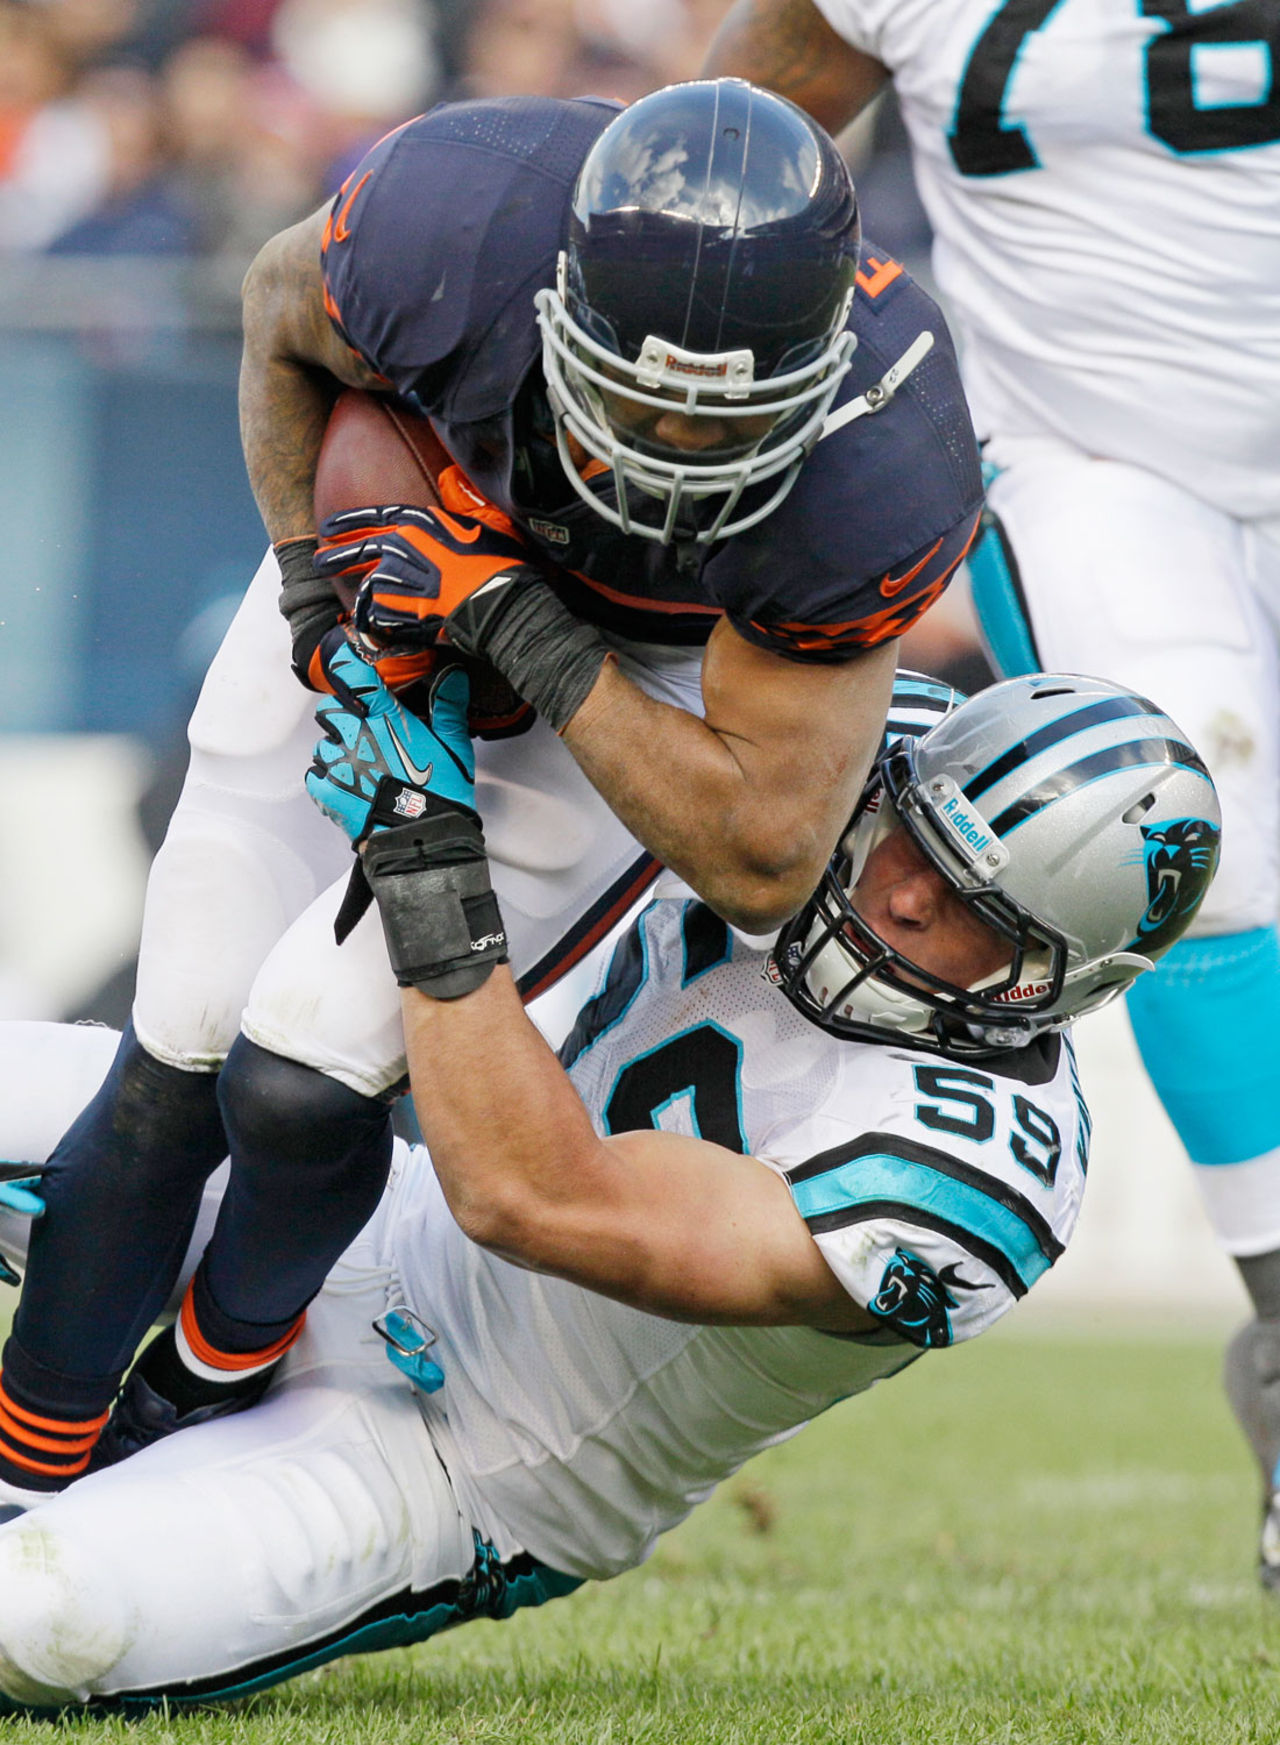 Kuechly was a tackling machine during his days at Boston College, a trait that transferred over to his rookie season in the NFL. As the man in the middle of a defense short on playmakers, the second-year linebacker is poised to be star at linebacker, both for the Panthers and fantasy owners.